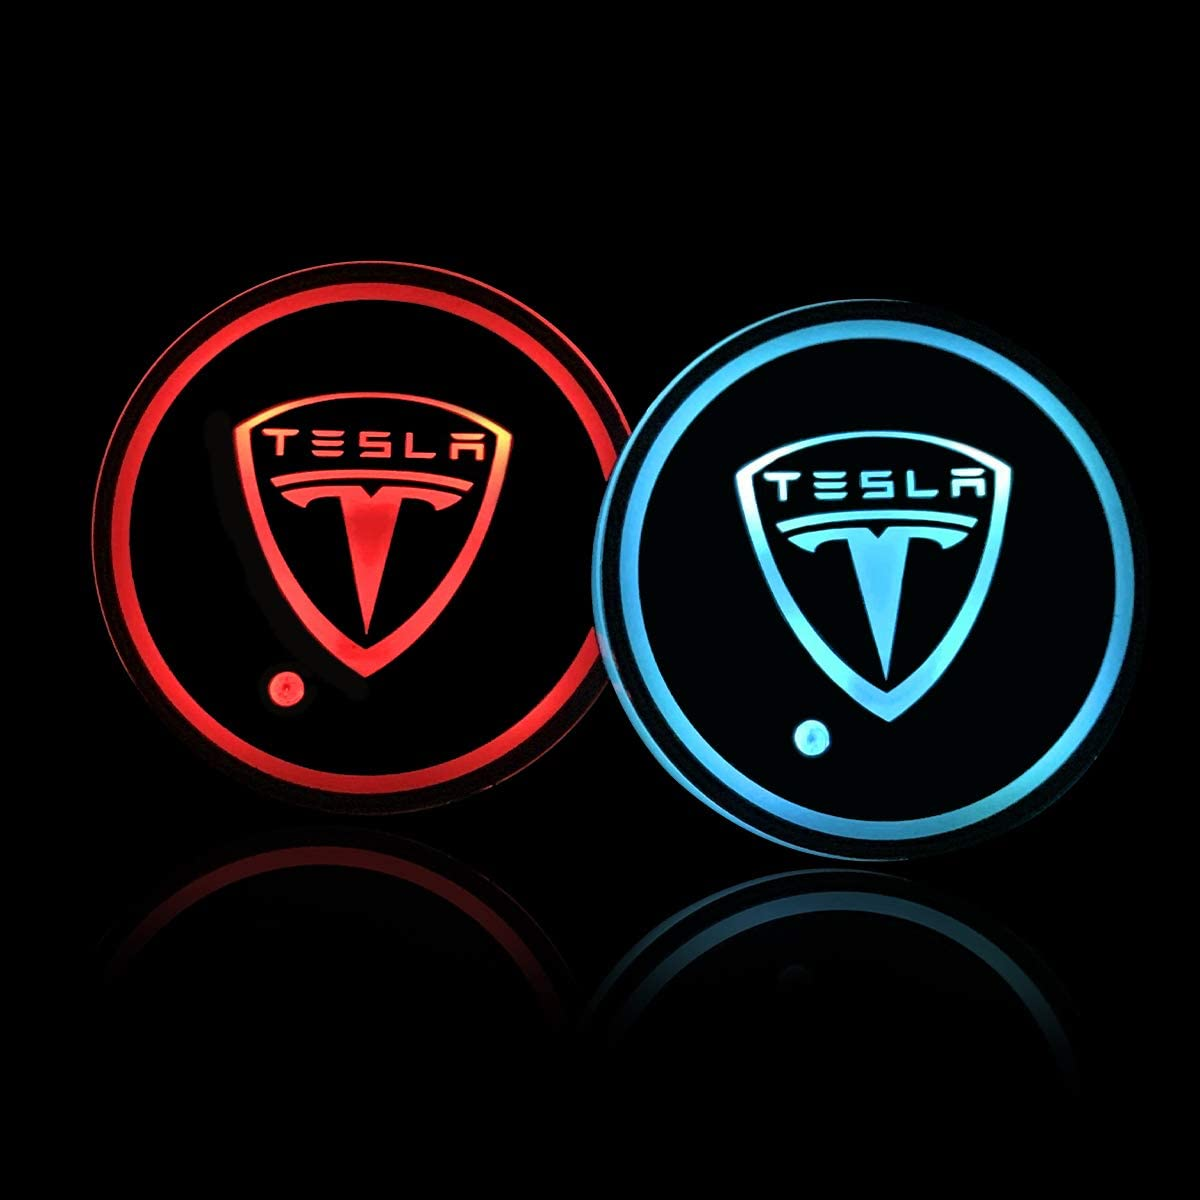 Auto Sport 2PCS LED Cup Holder Mat Pad Coaster with USB Rechargeable Interior Decoration Light Fit Tesla Accessories